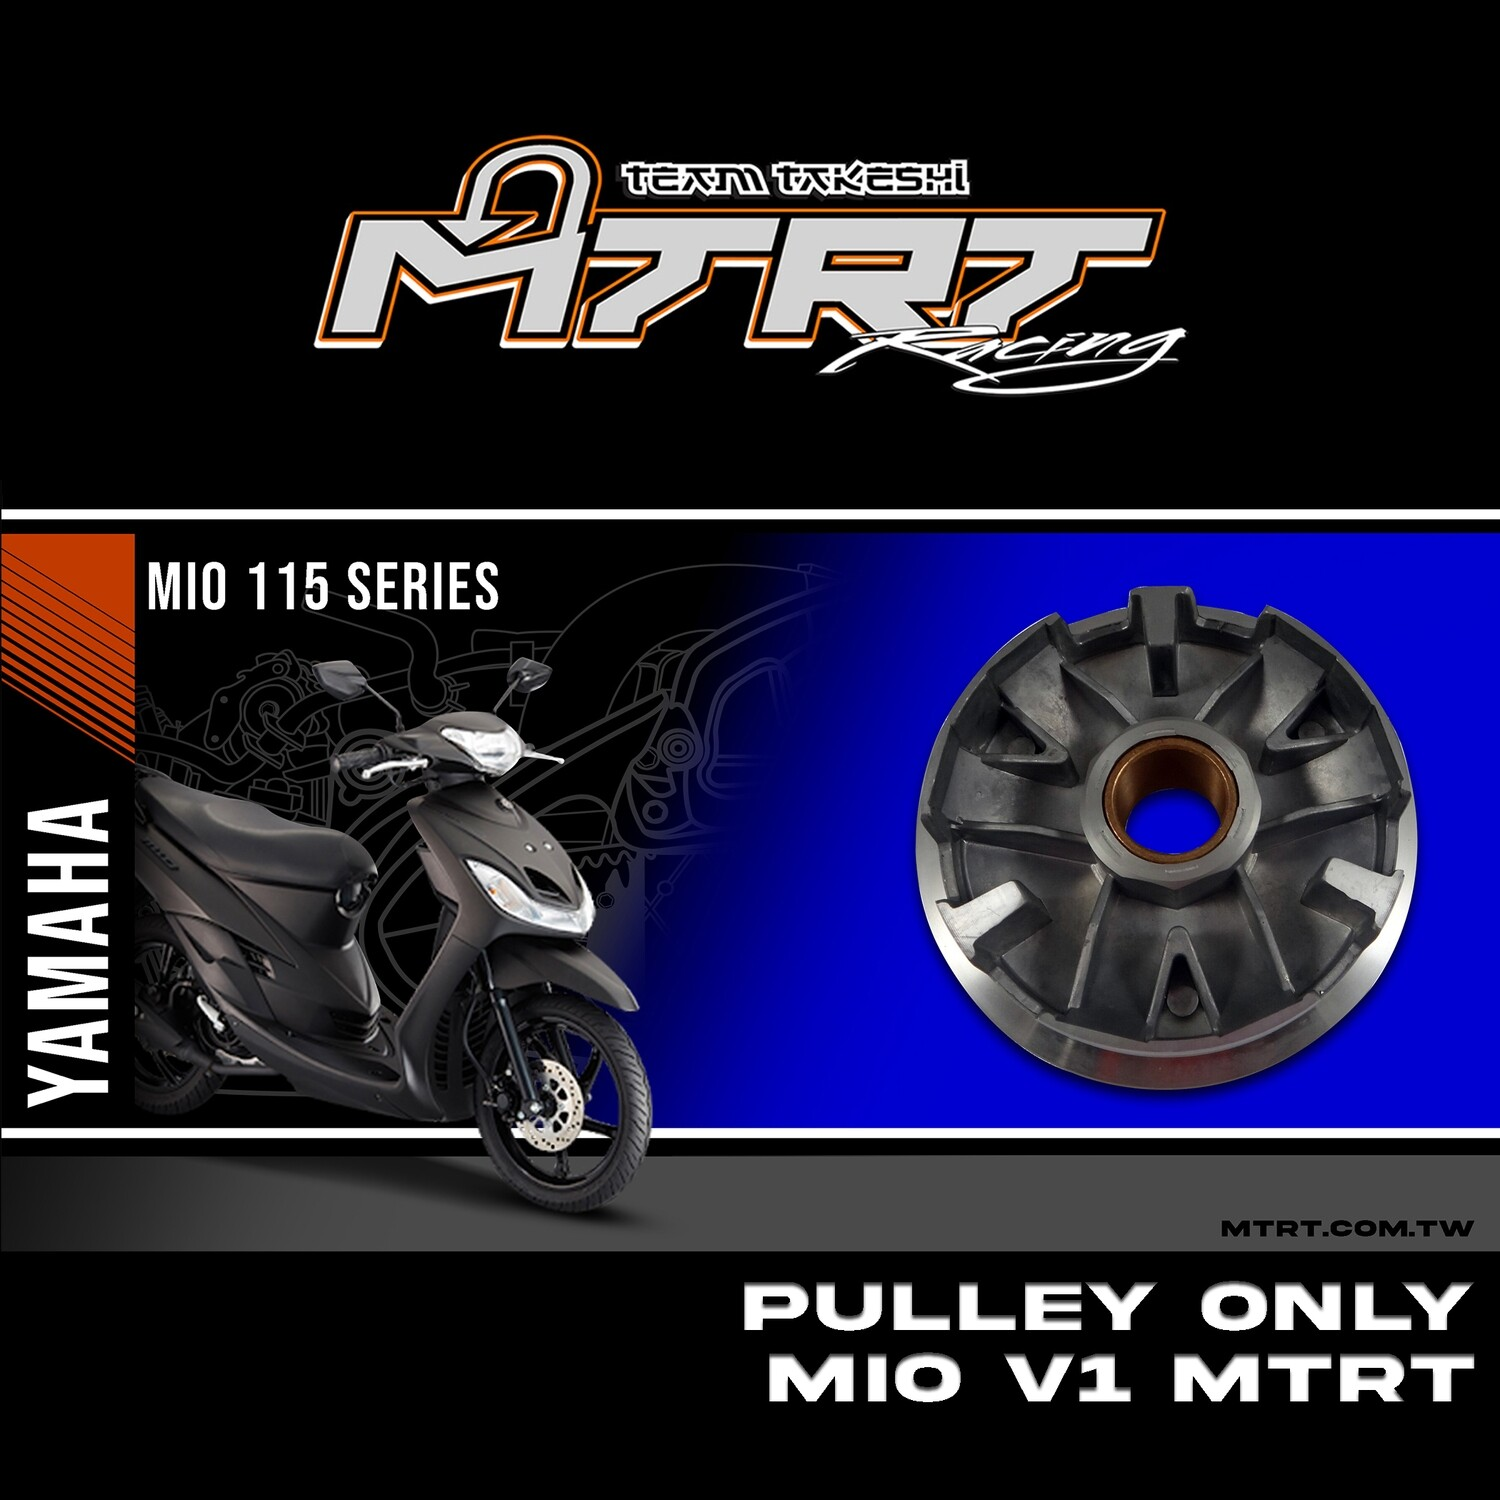 PULLEY  ONLY  MIO  V1  MTRT M-Bb4